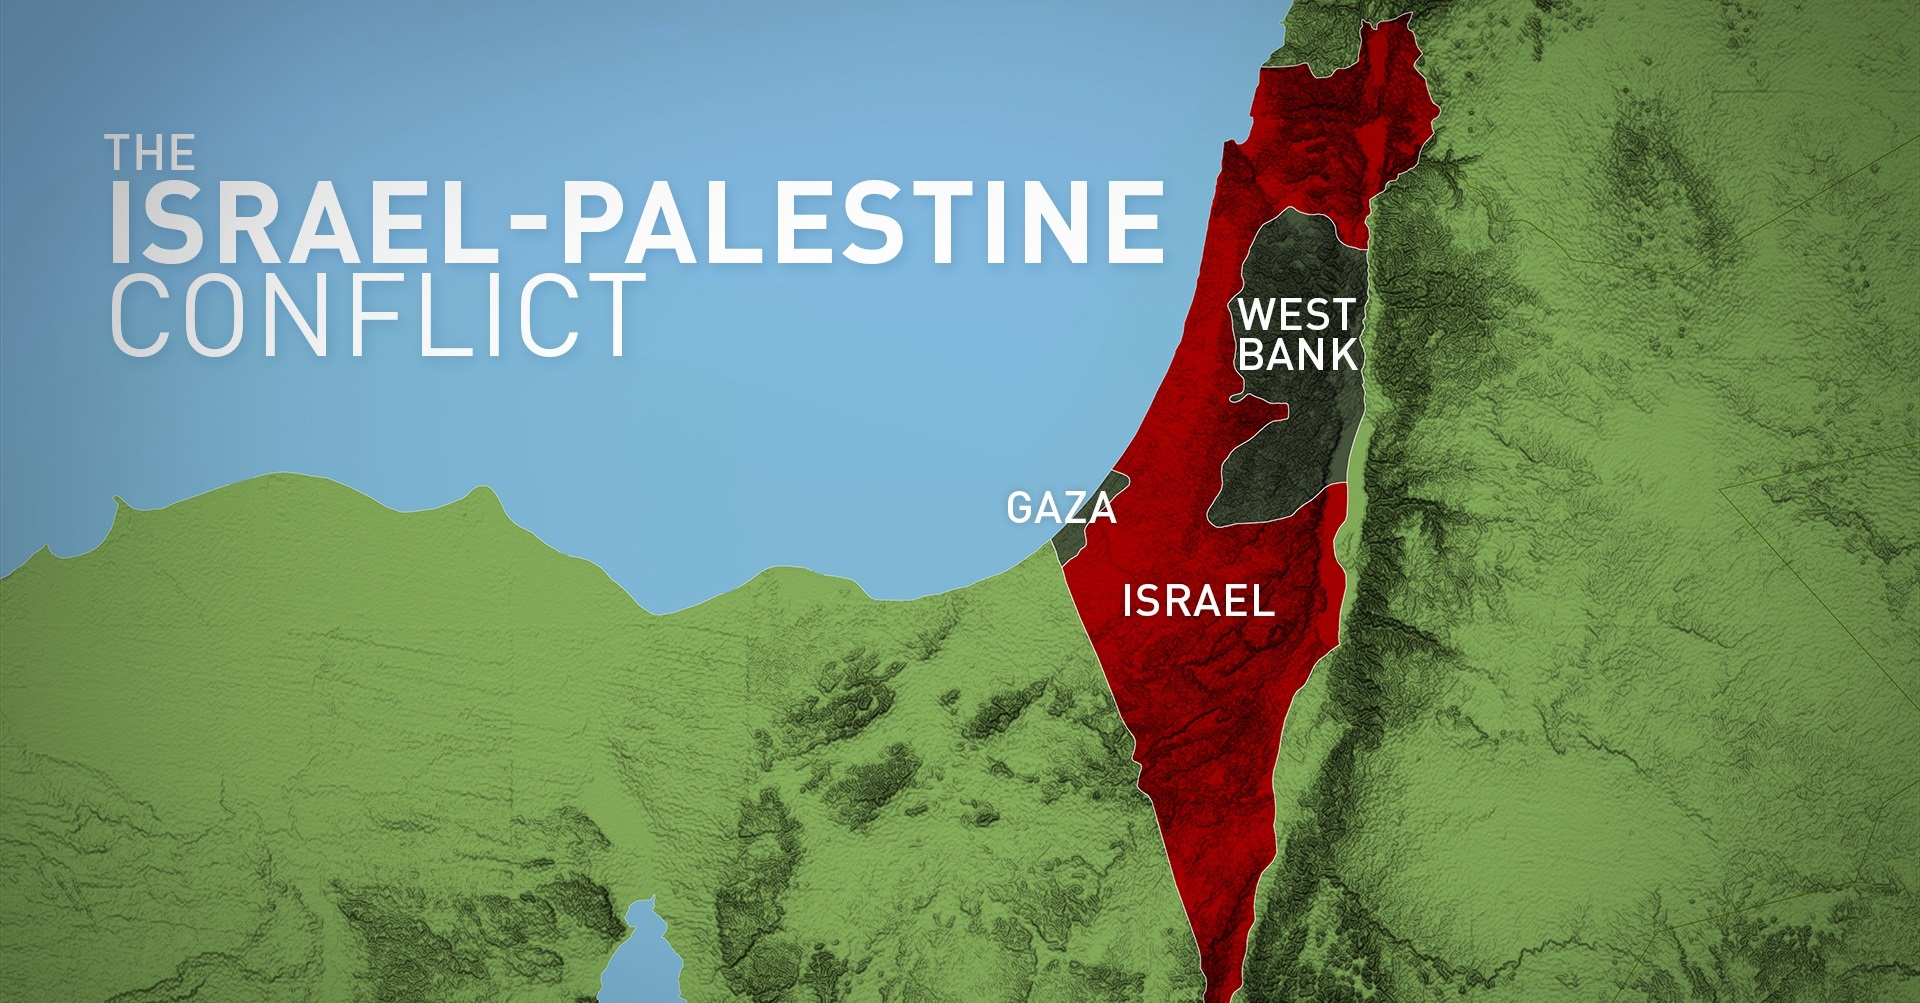 3d Wallpaper In Pakistan The Top 10 Documentaries About The Israel Palestine Conflict